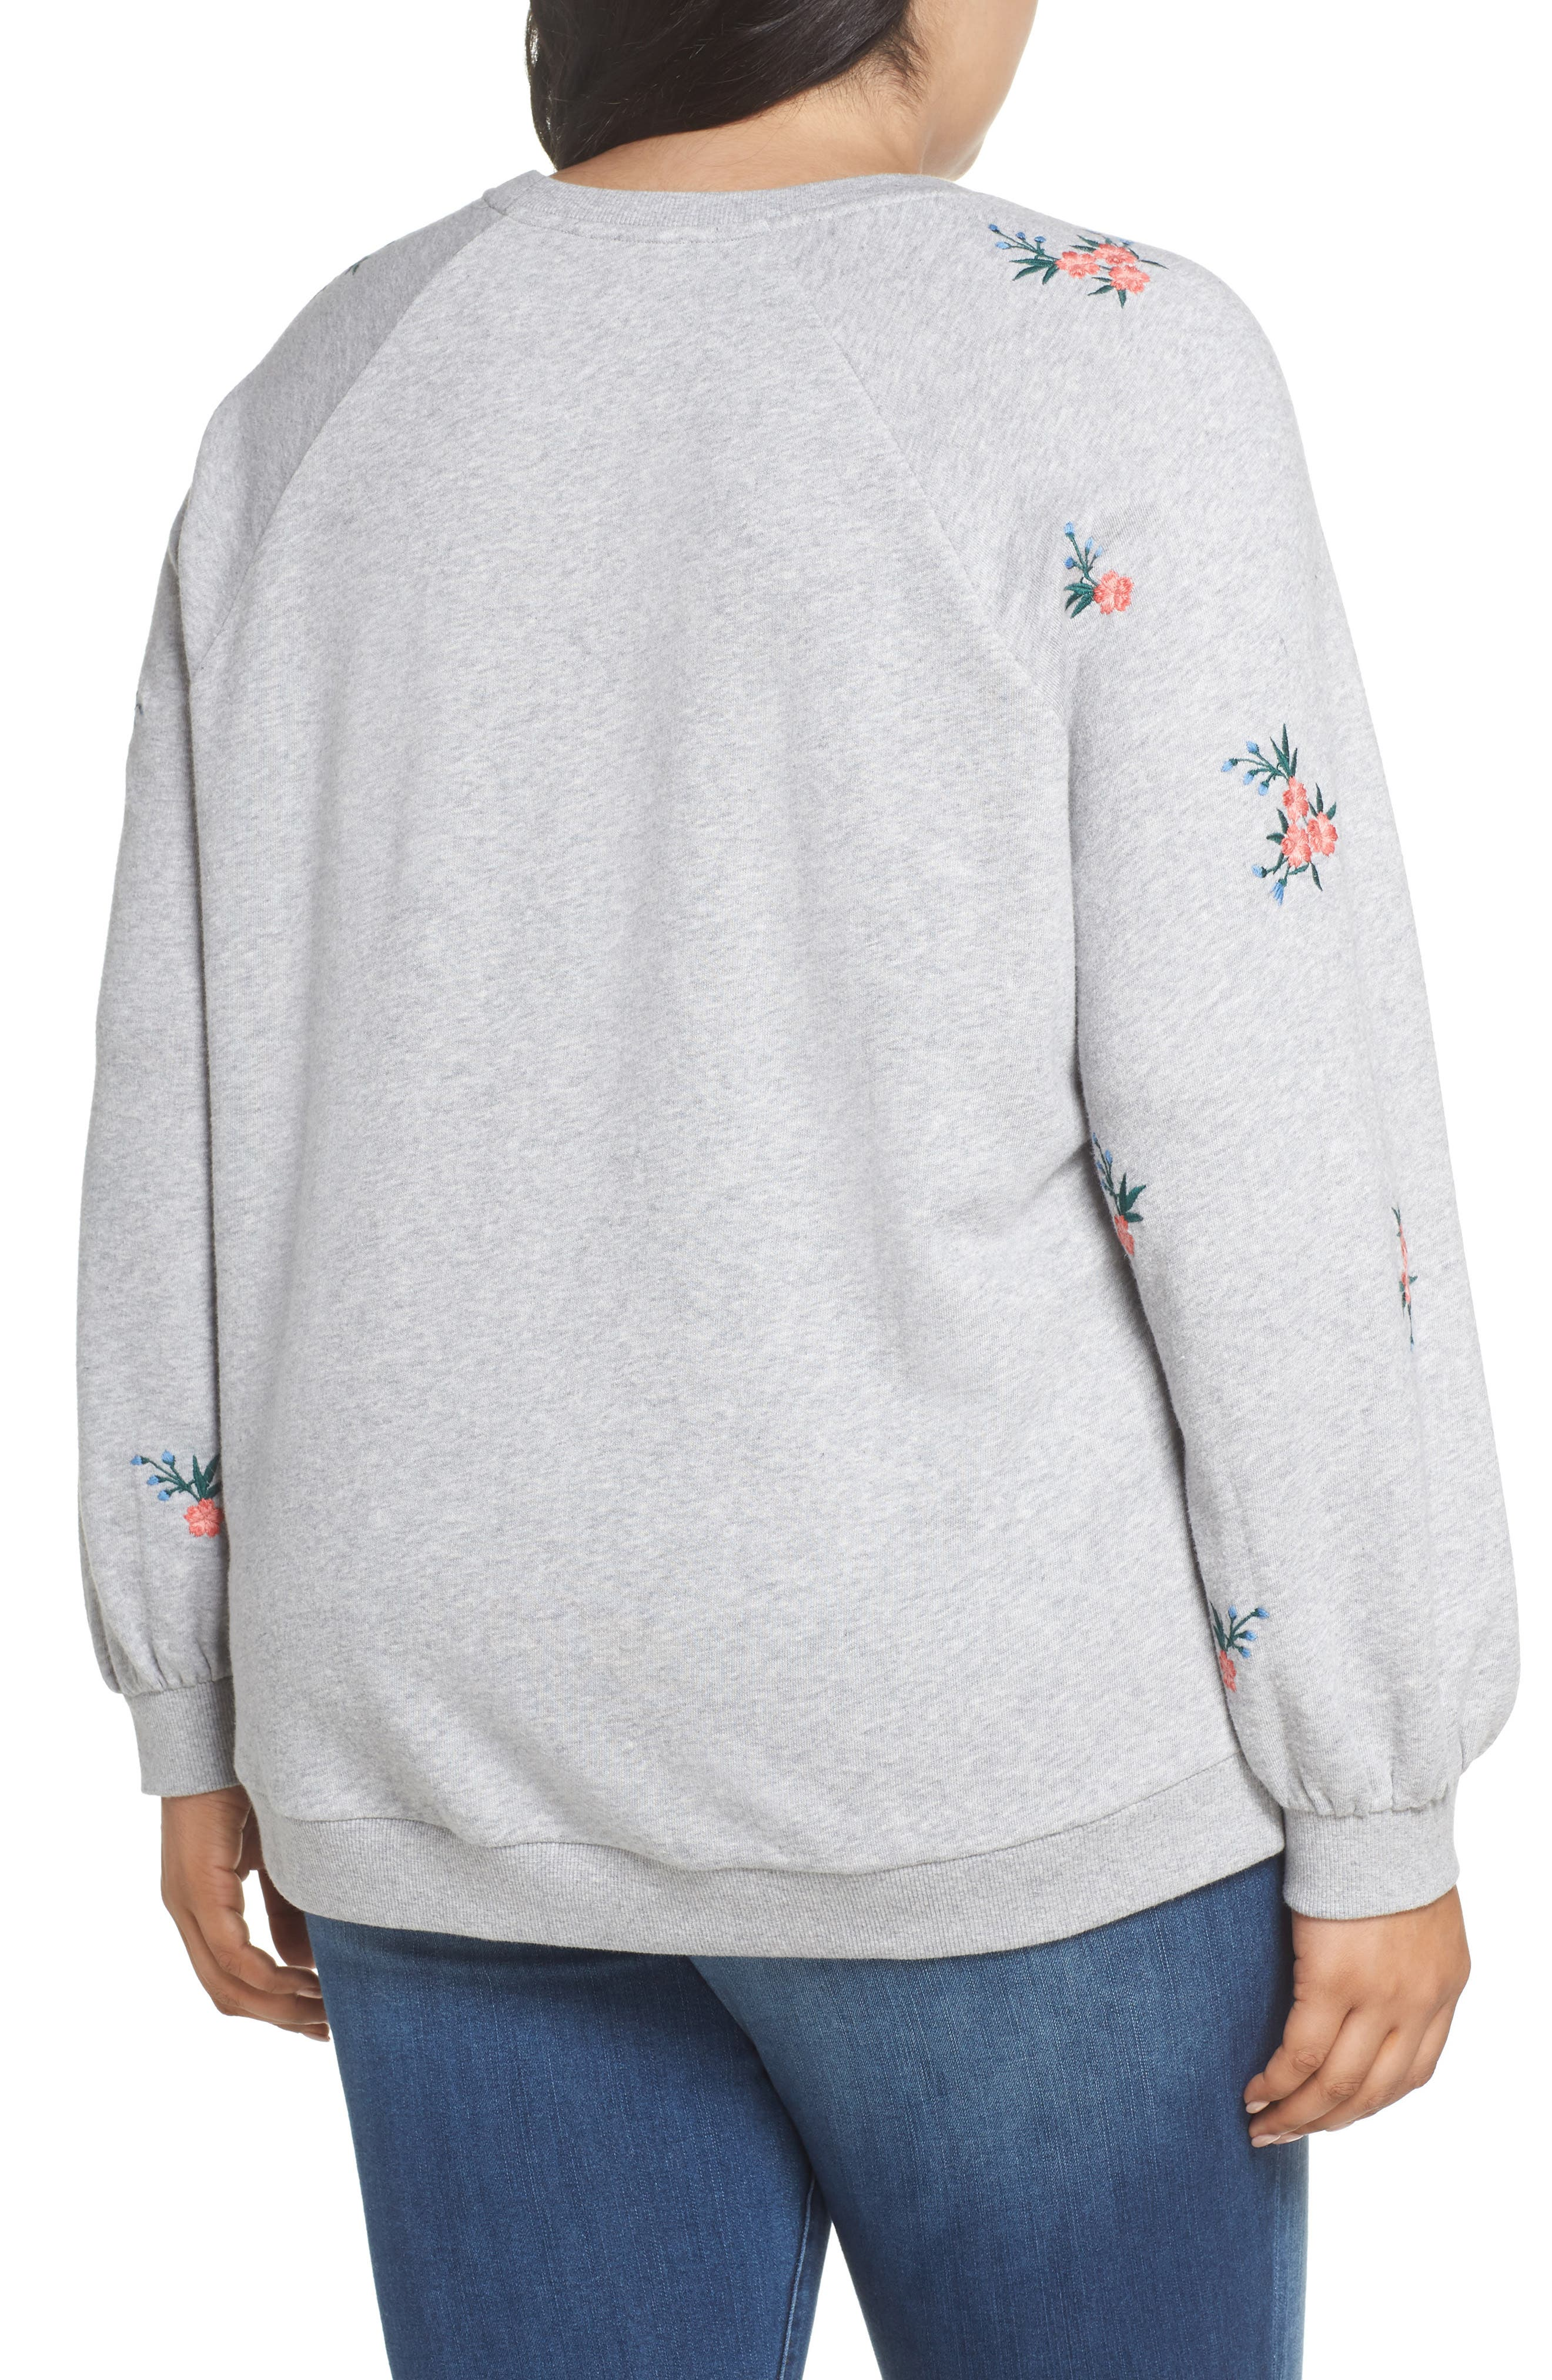 Embroidered Cotton Sweatshirt,                             Alternate thumbnail 2, color,                             030